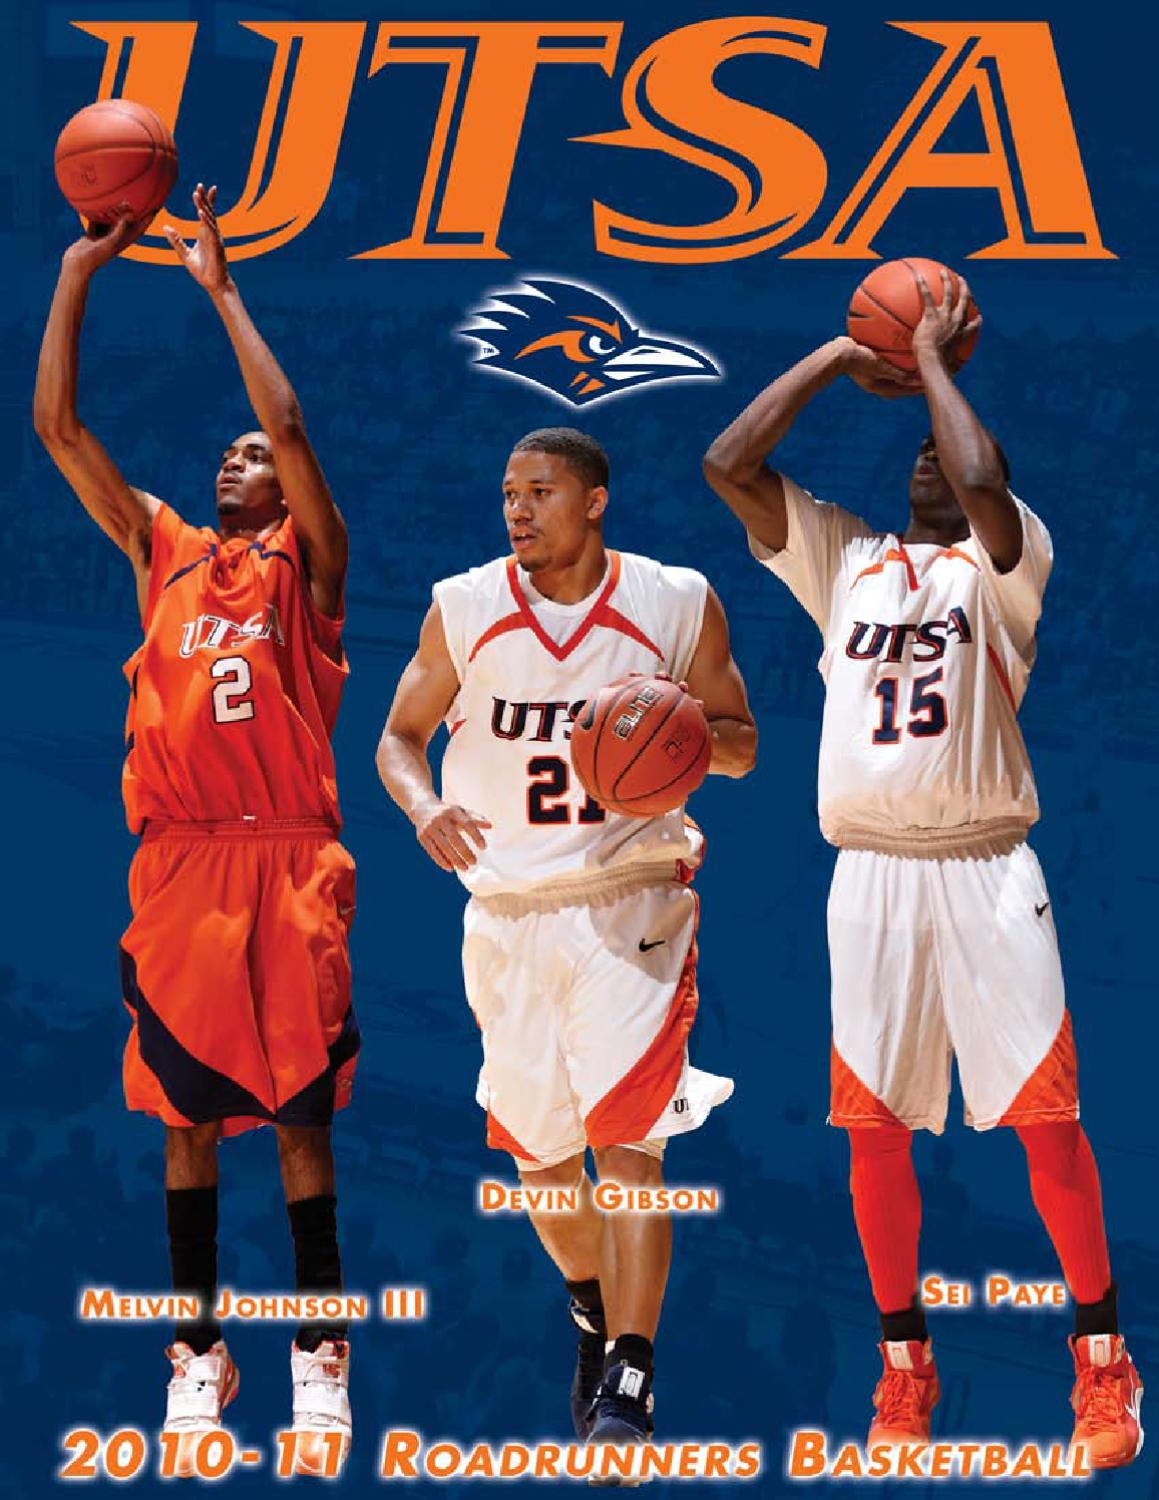 0f1307a343e6 2010-11 UTSA Men s Basketball Media Guide by UTSA Athletics Communications  - issuu